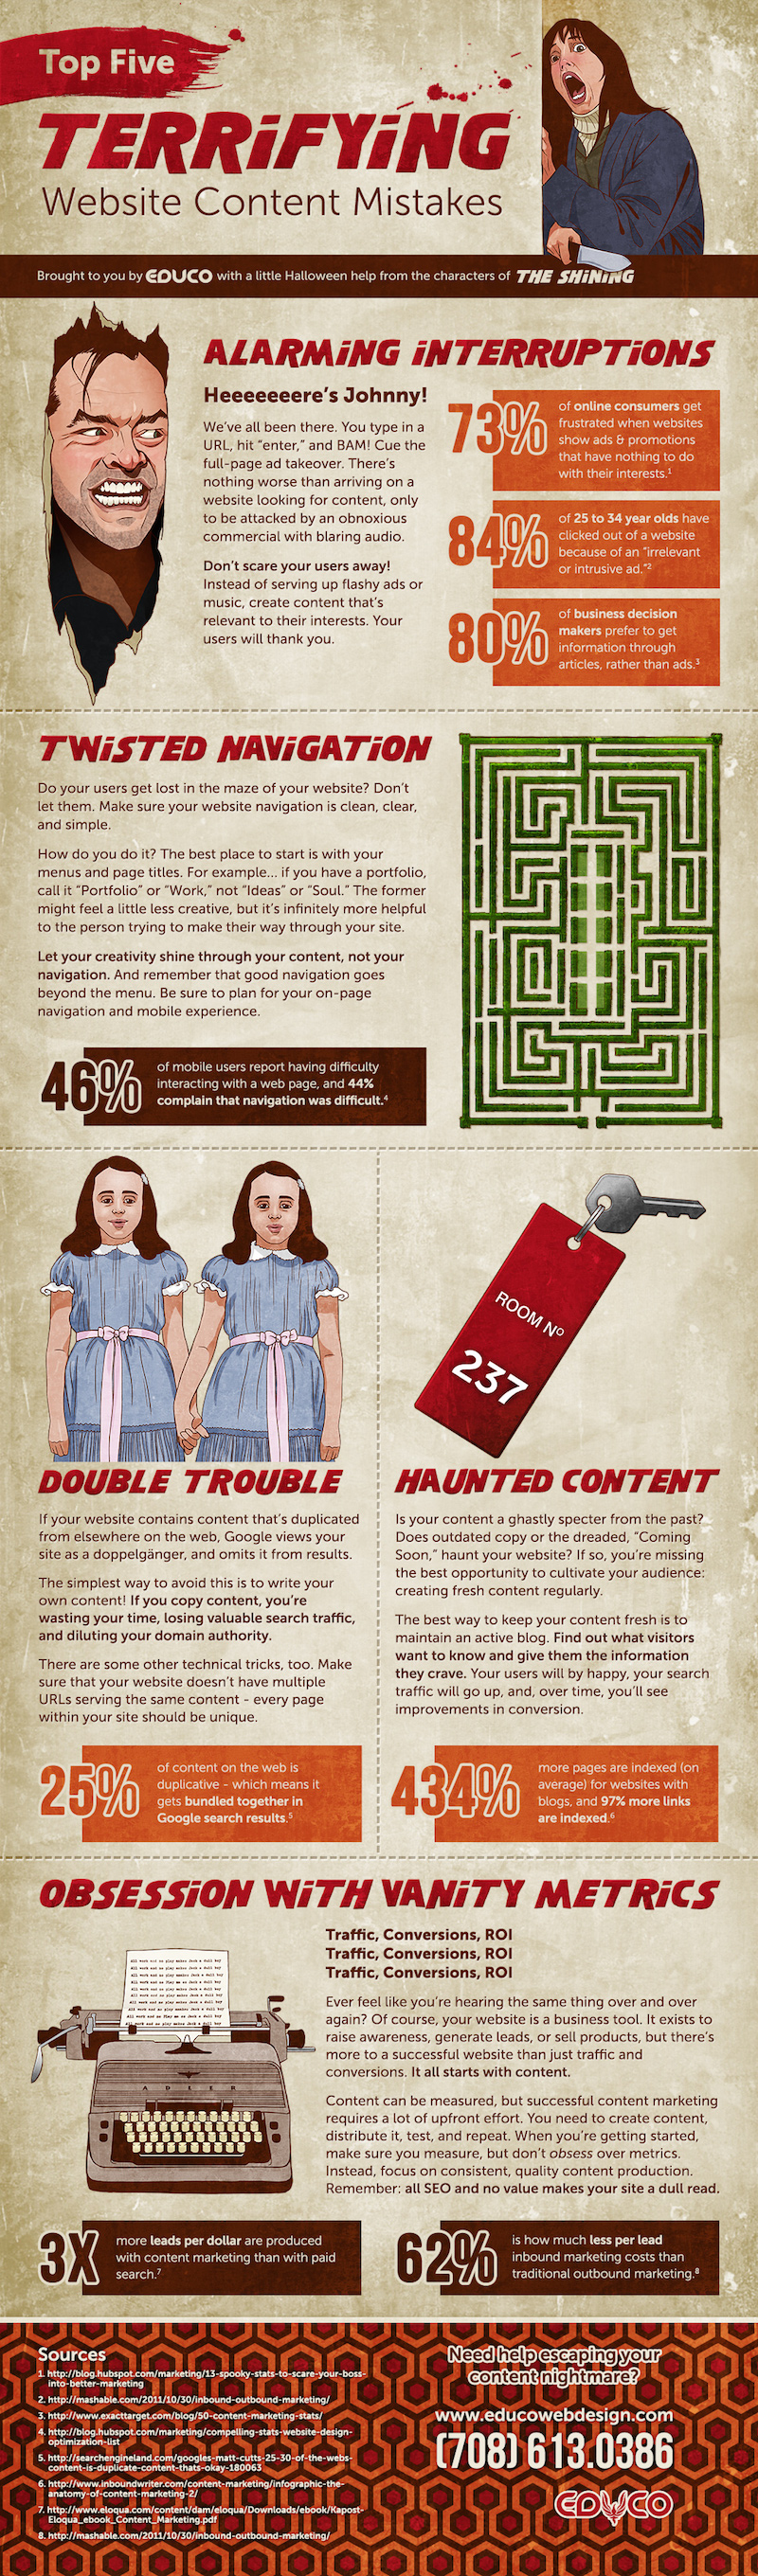 5 Terrifying Website Content Mistakes